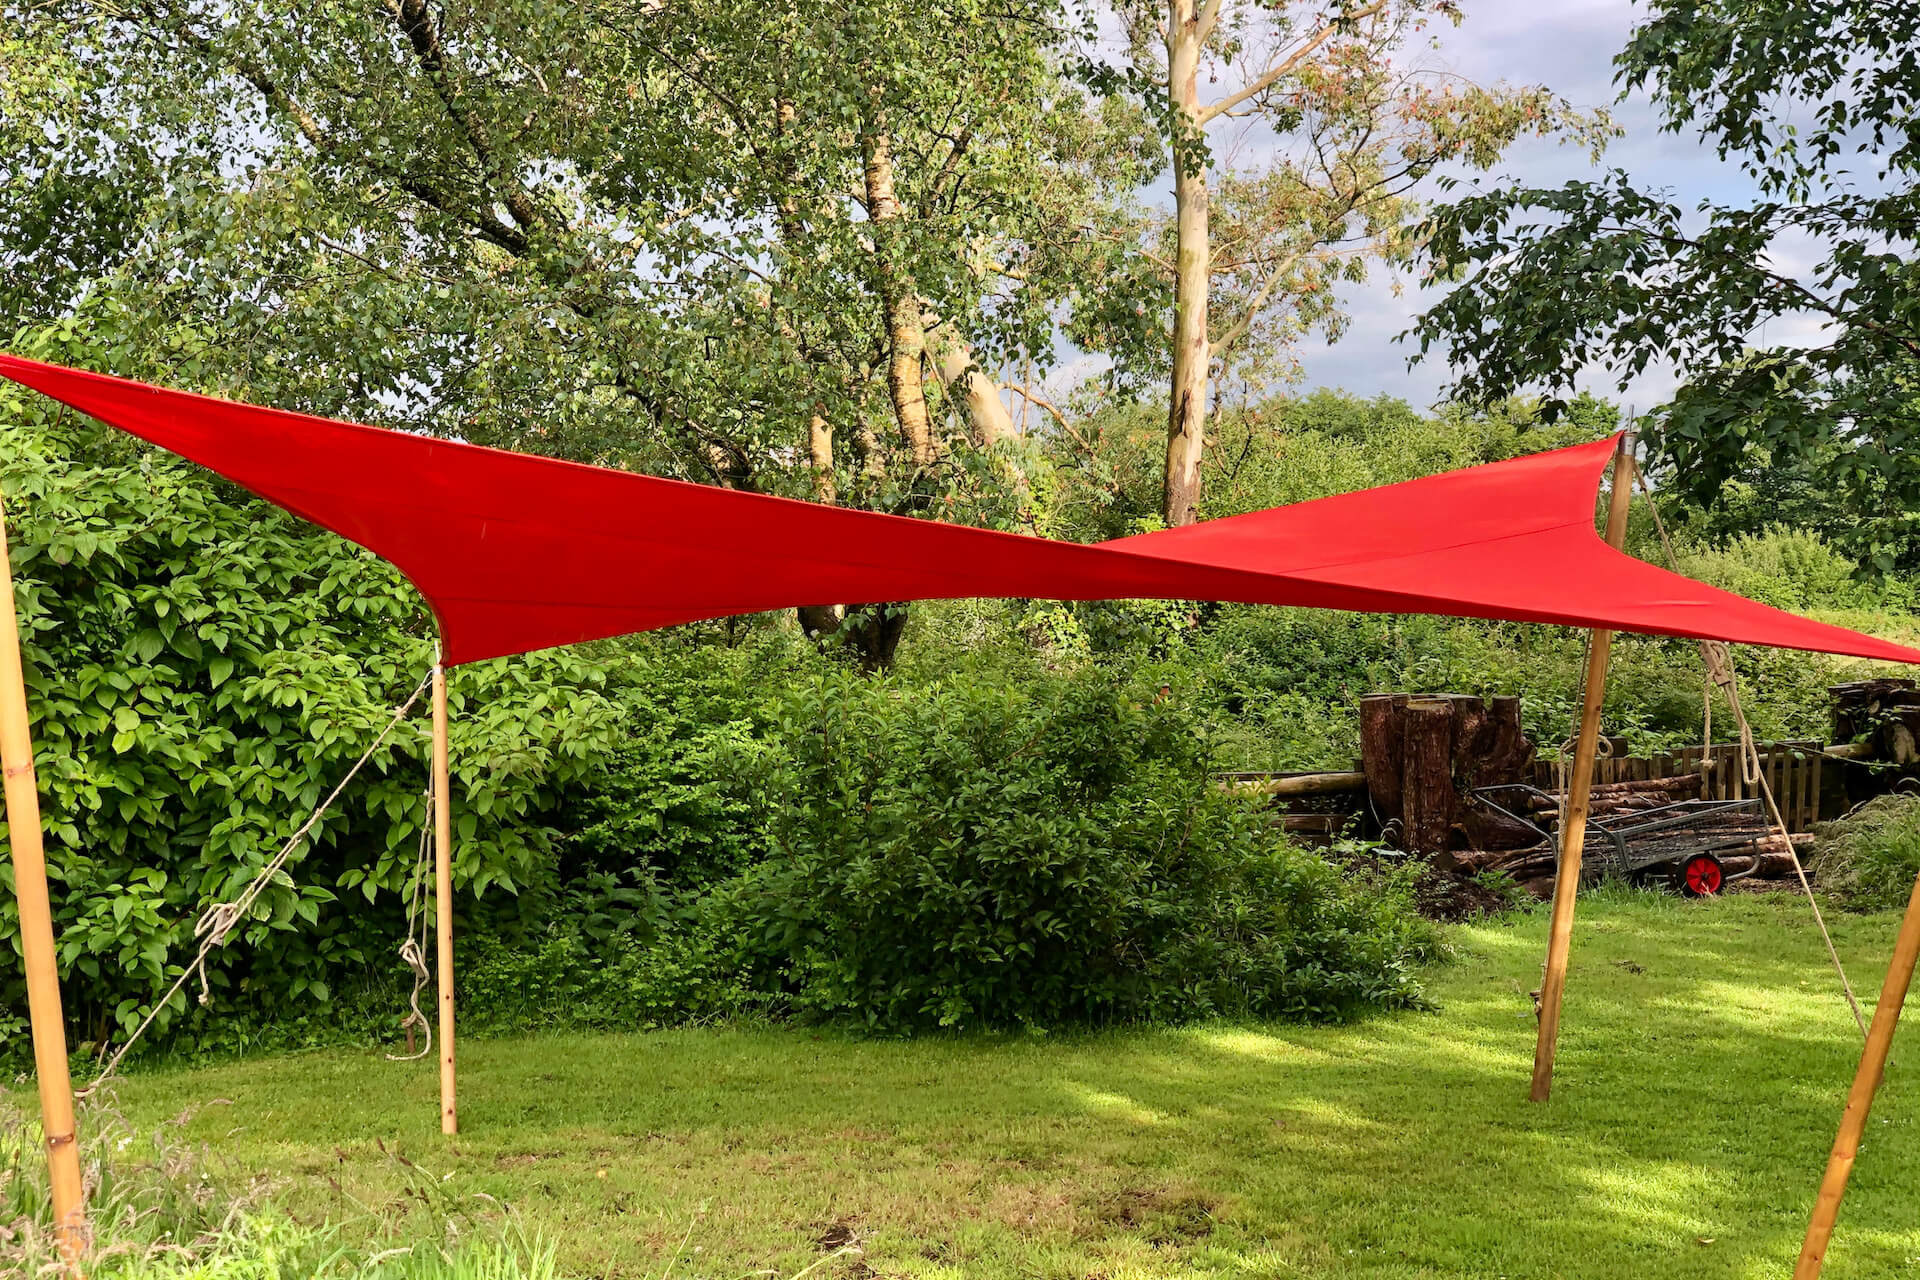 Square red shade sail 4m x 4m